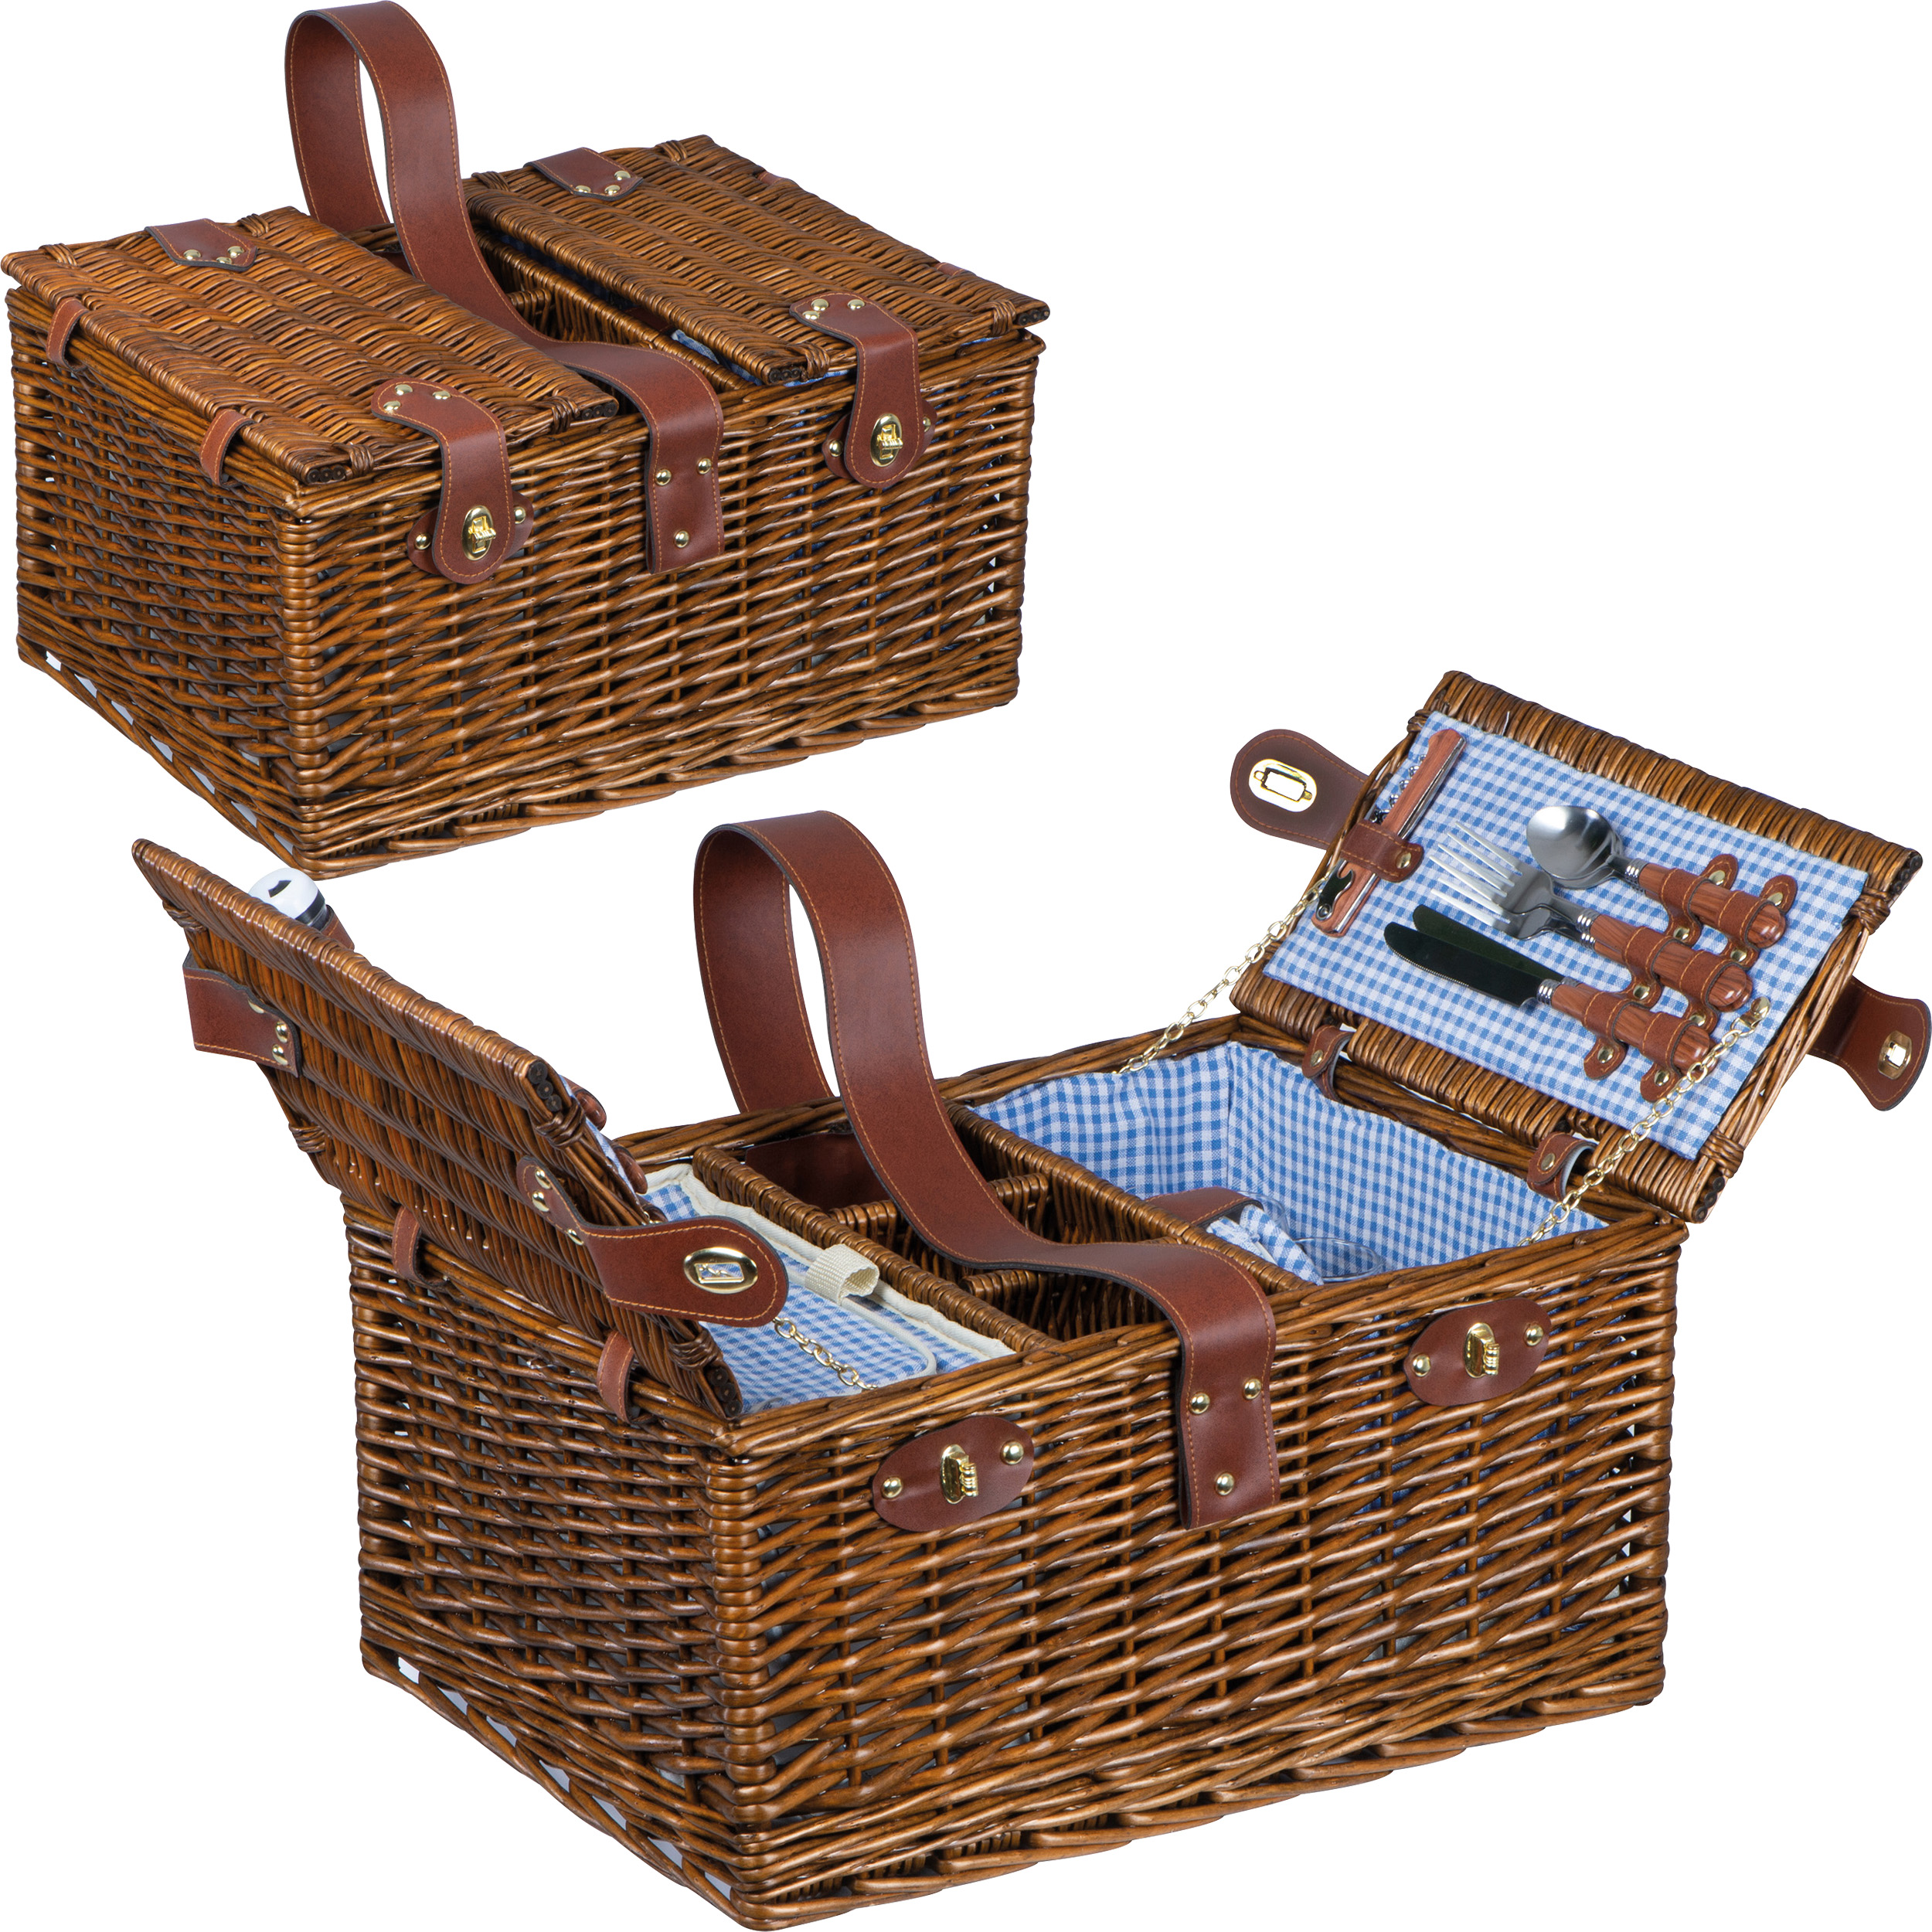 Picnic basket for 4 people